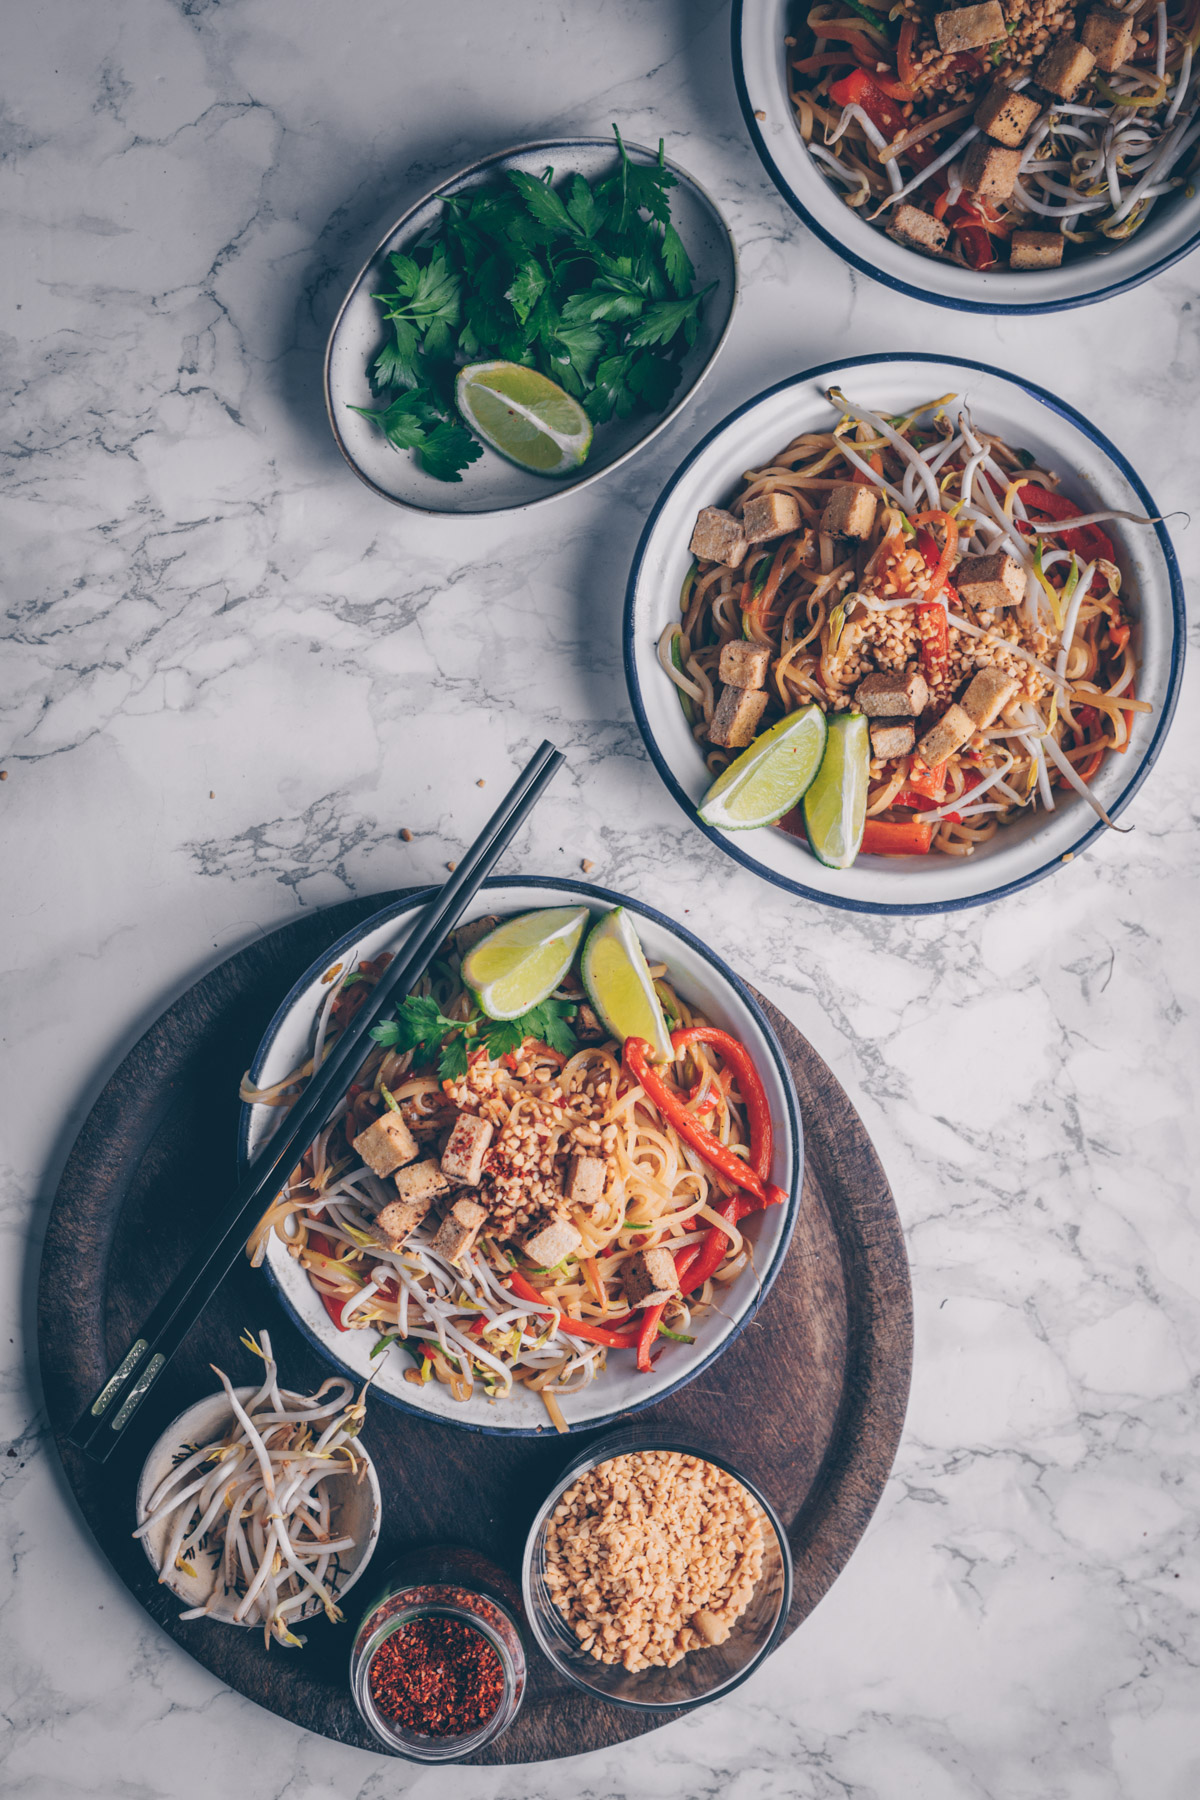 Vegan Pad Thai by Kati of black.white.vivid.